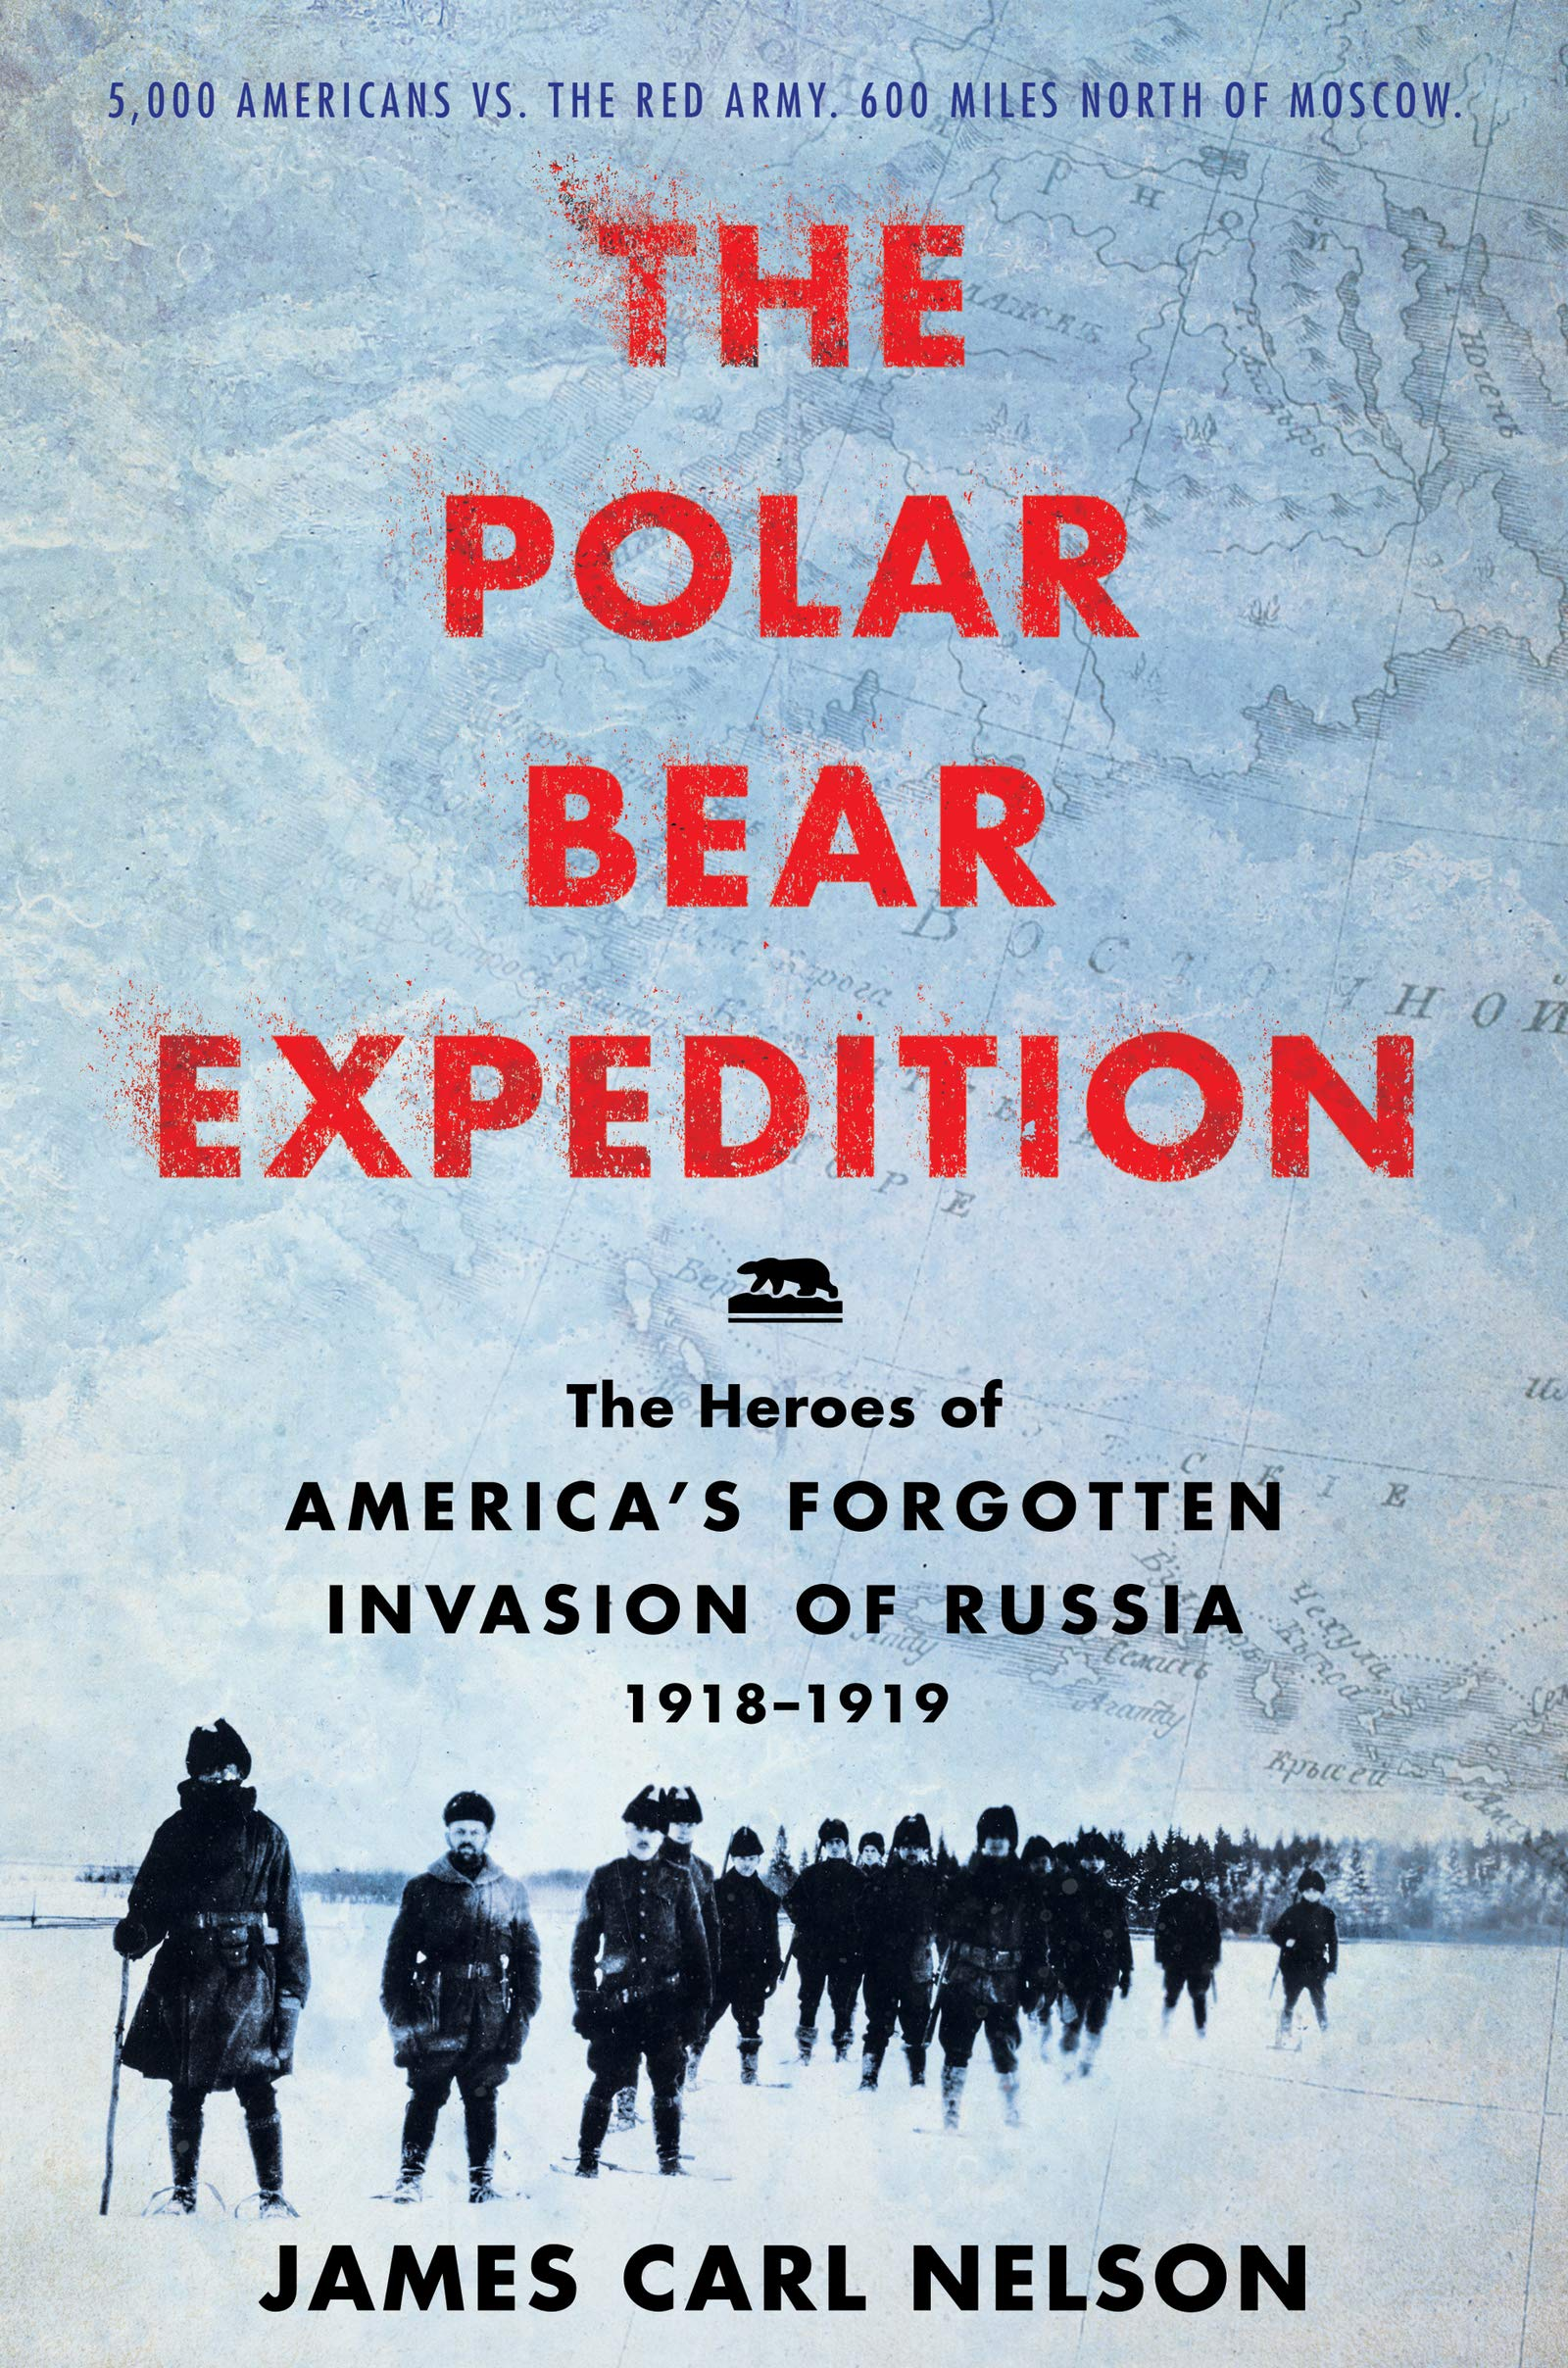 c9901921556 The Polar Bear Expedition  The Heroes of America s Forgotten ...